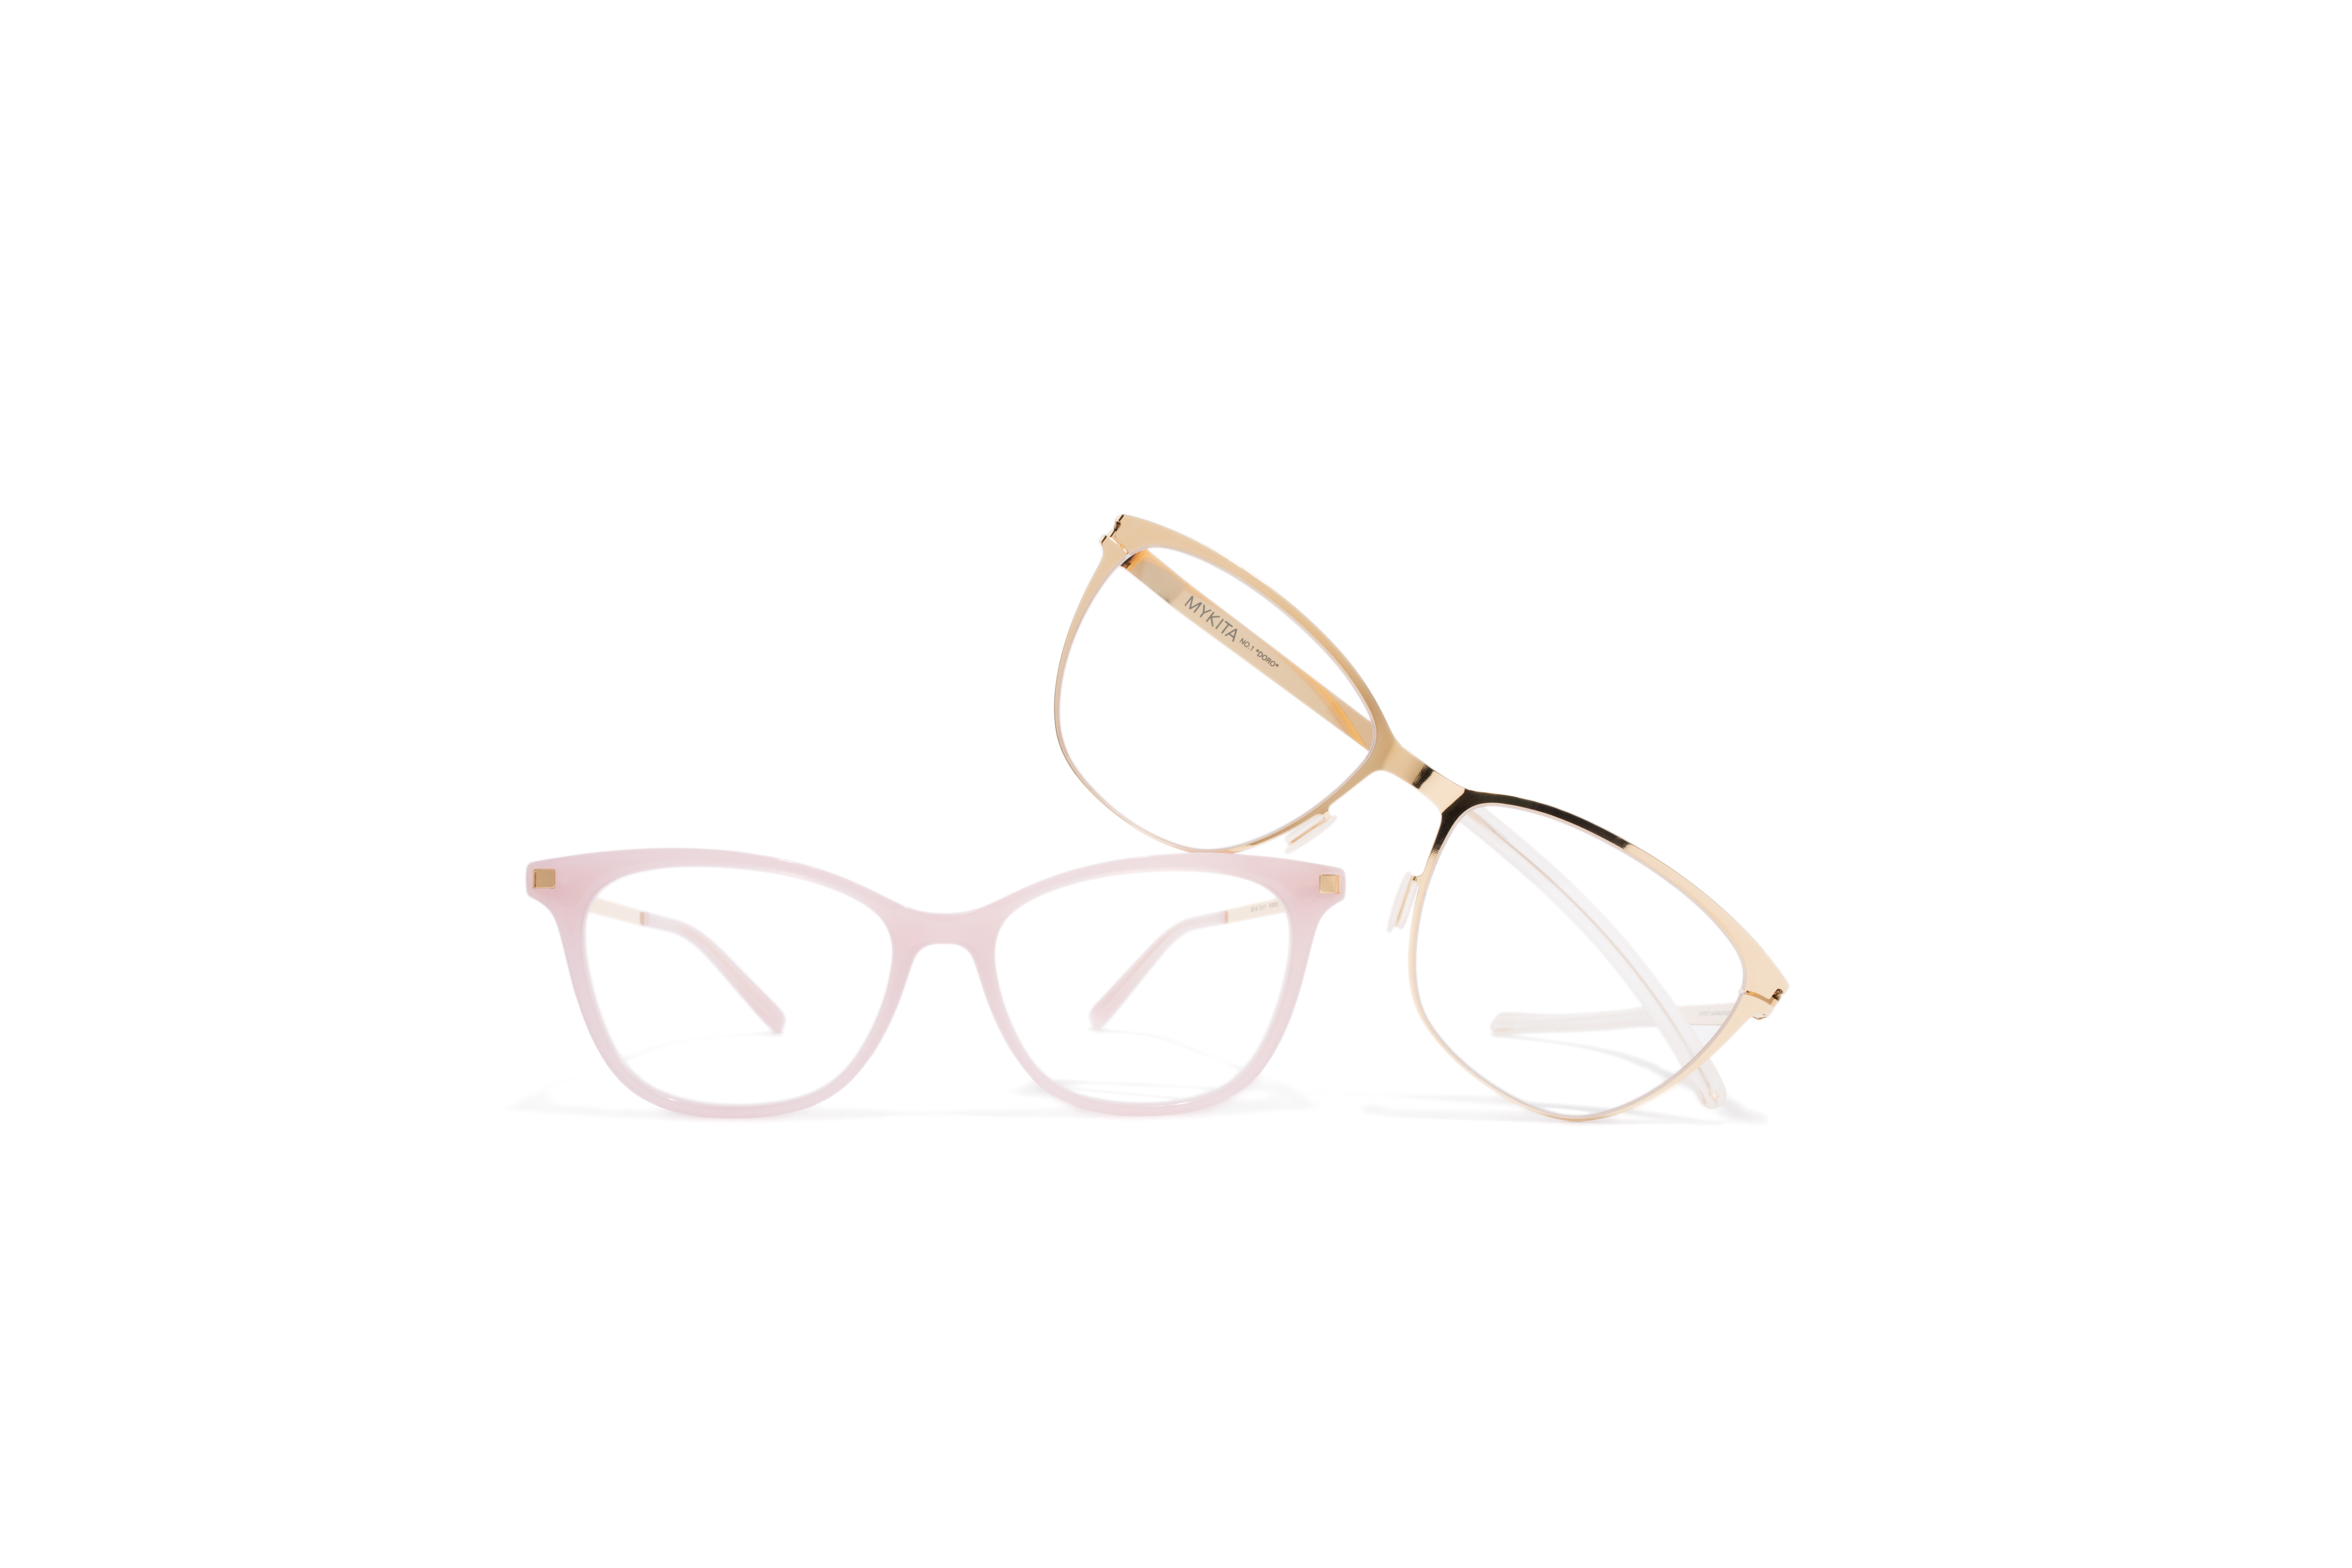 Butterfly Rx MYKITA No1 Rx Doro Glossygold Clear Lite Rx Sesi Pink Sherbet Glossygold Clear Tif